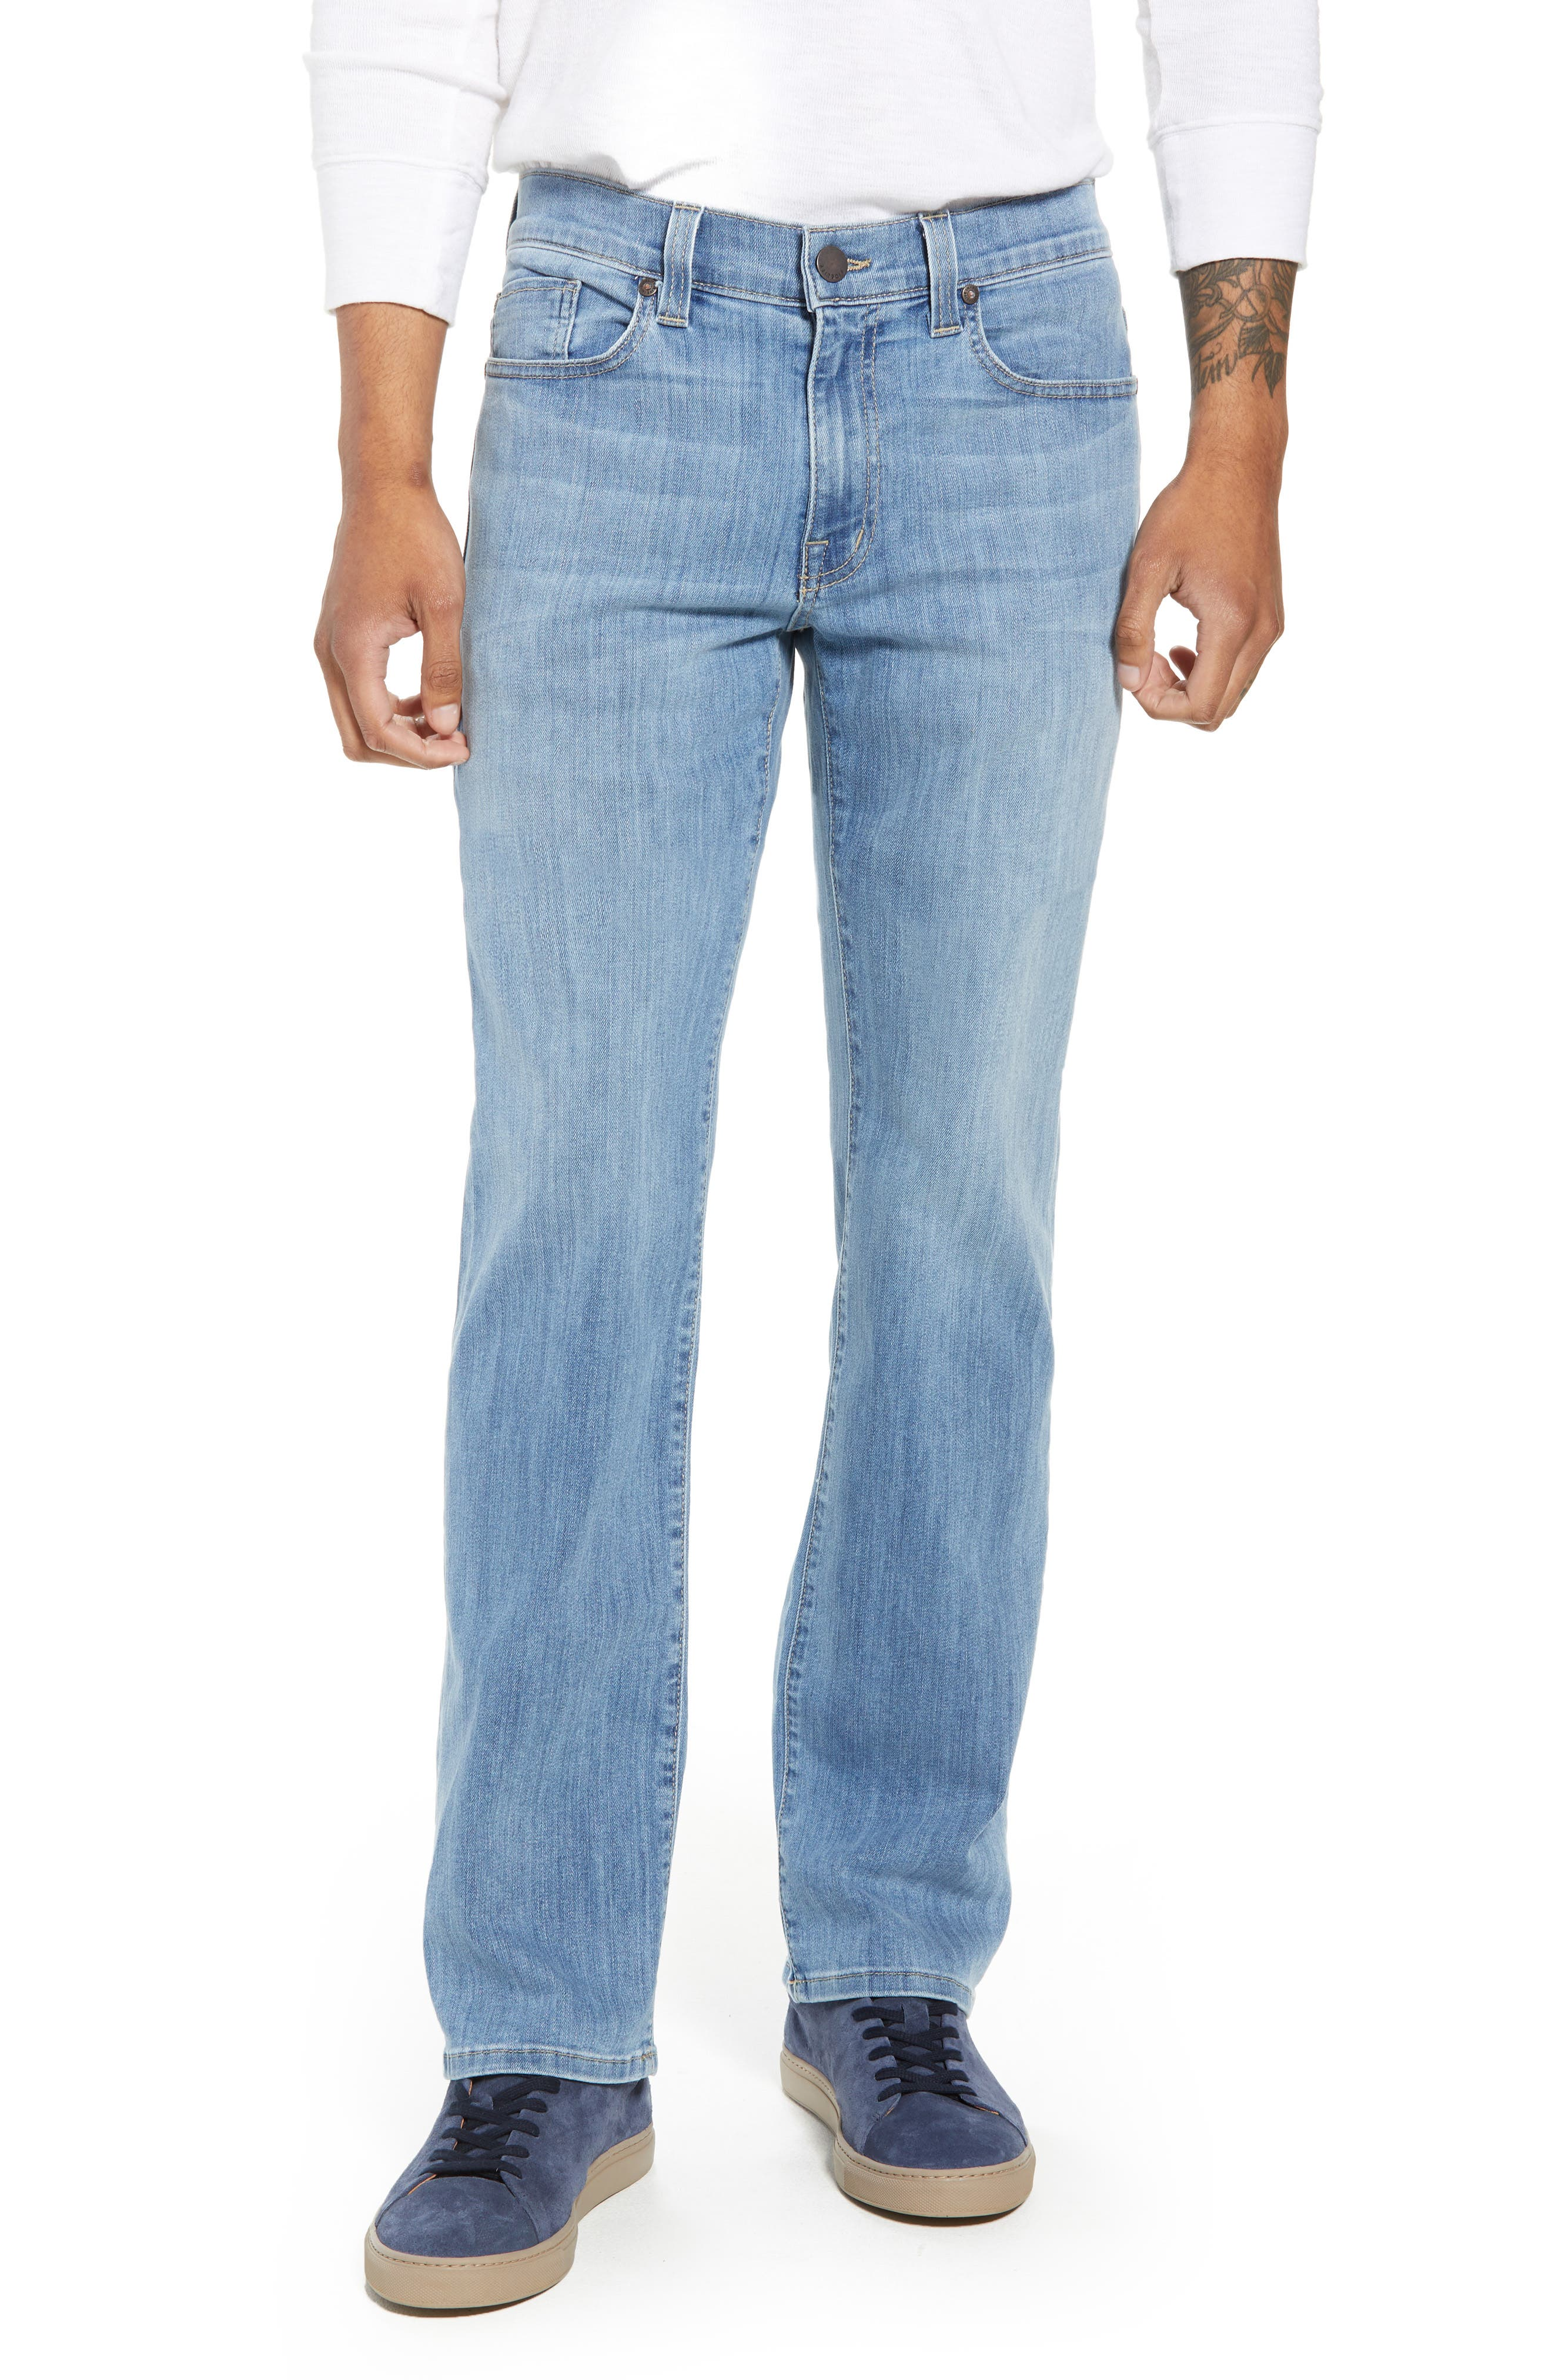 5011 Relaxed Fit Jeans,                             Main thumbnail 1, color,                             400